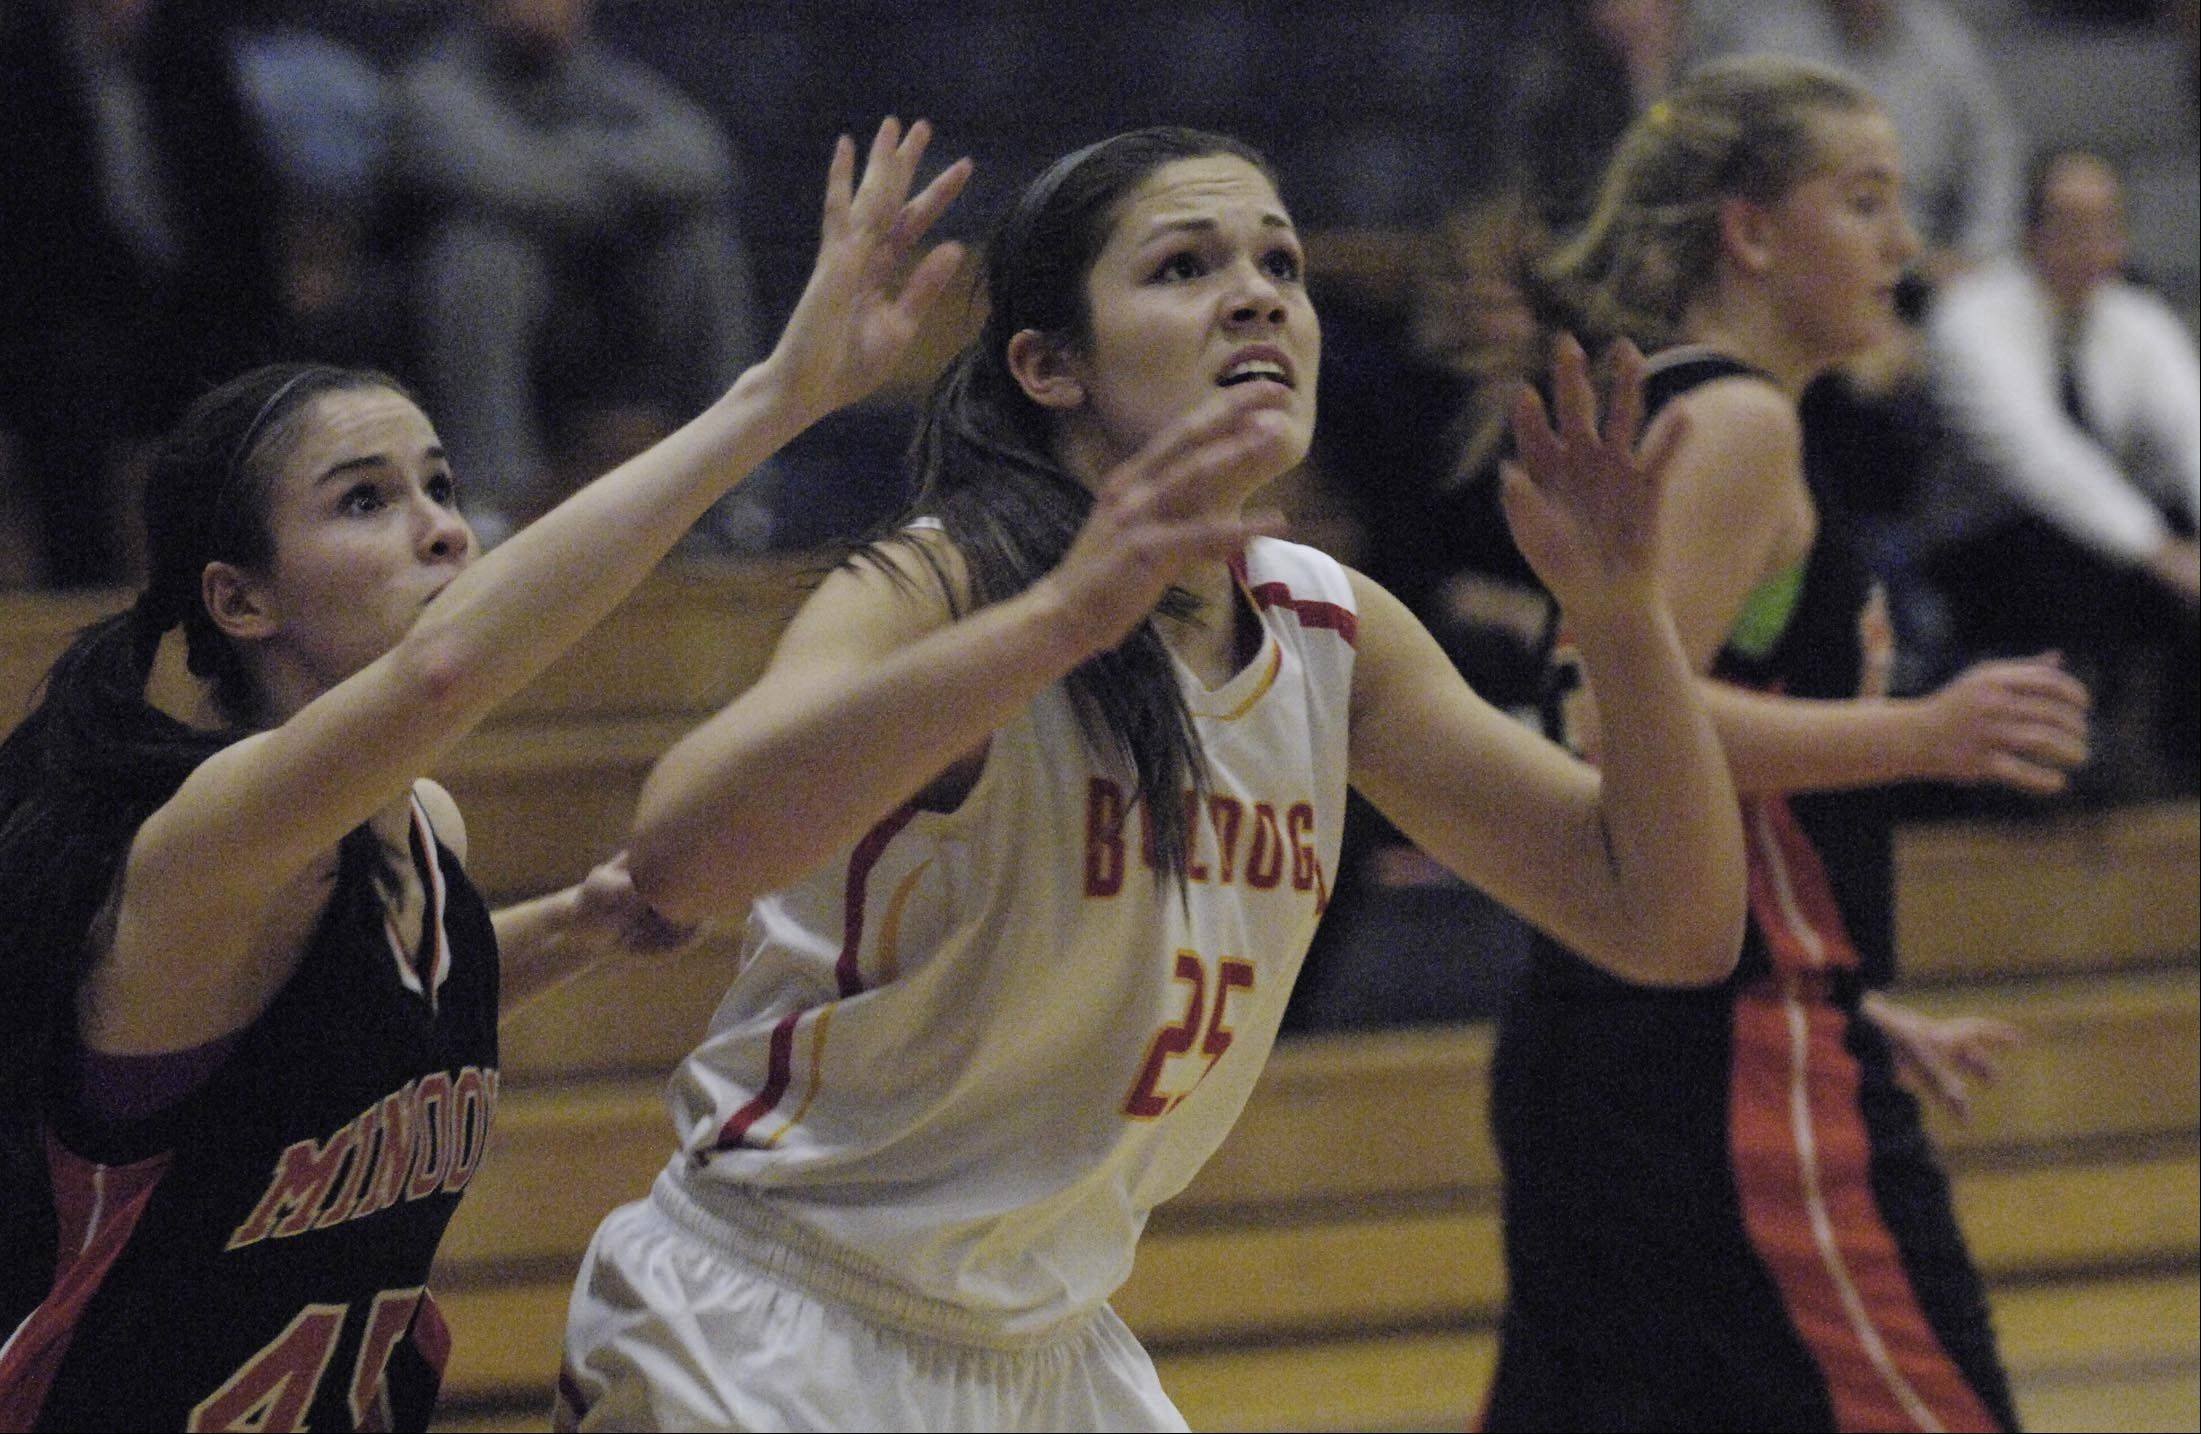 Images from the Minooka vs. Batavia girls basketball game Monday, December 10, 2012 in Oswego.